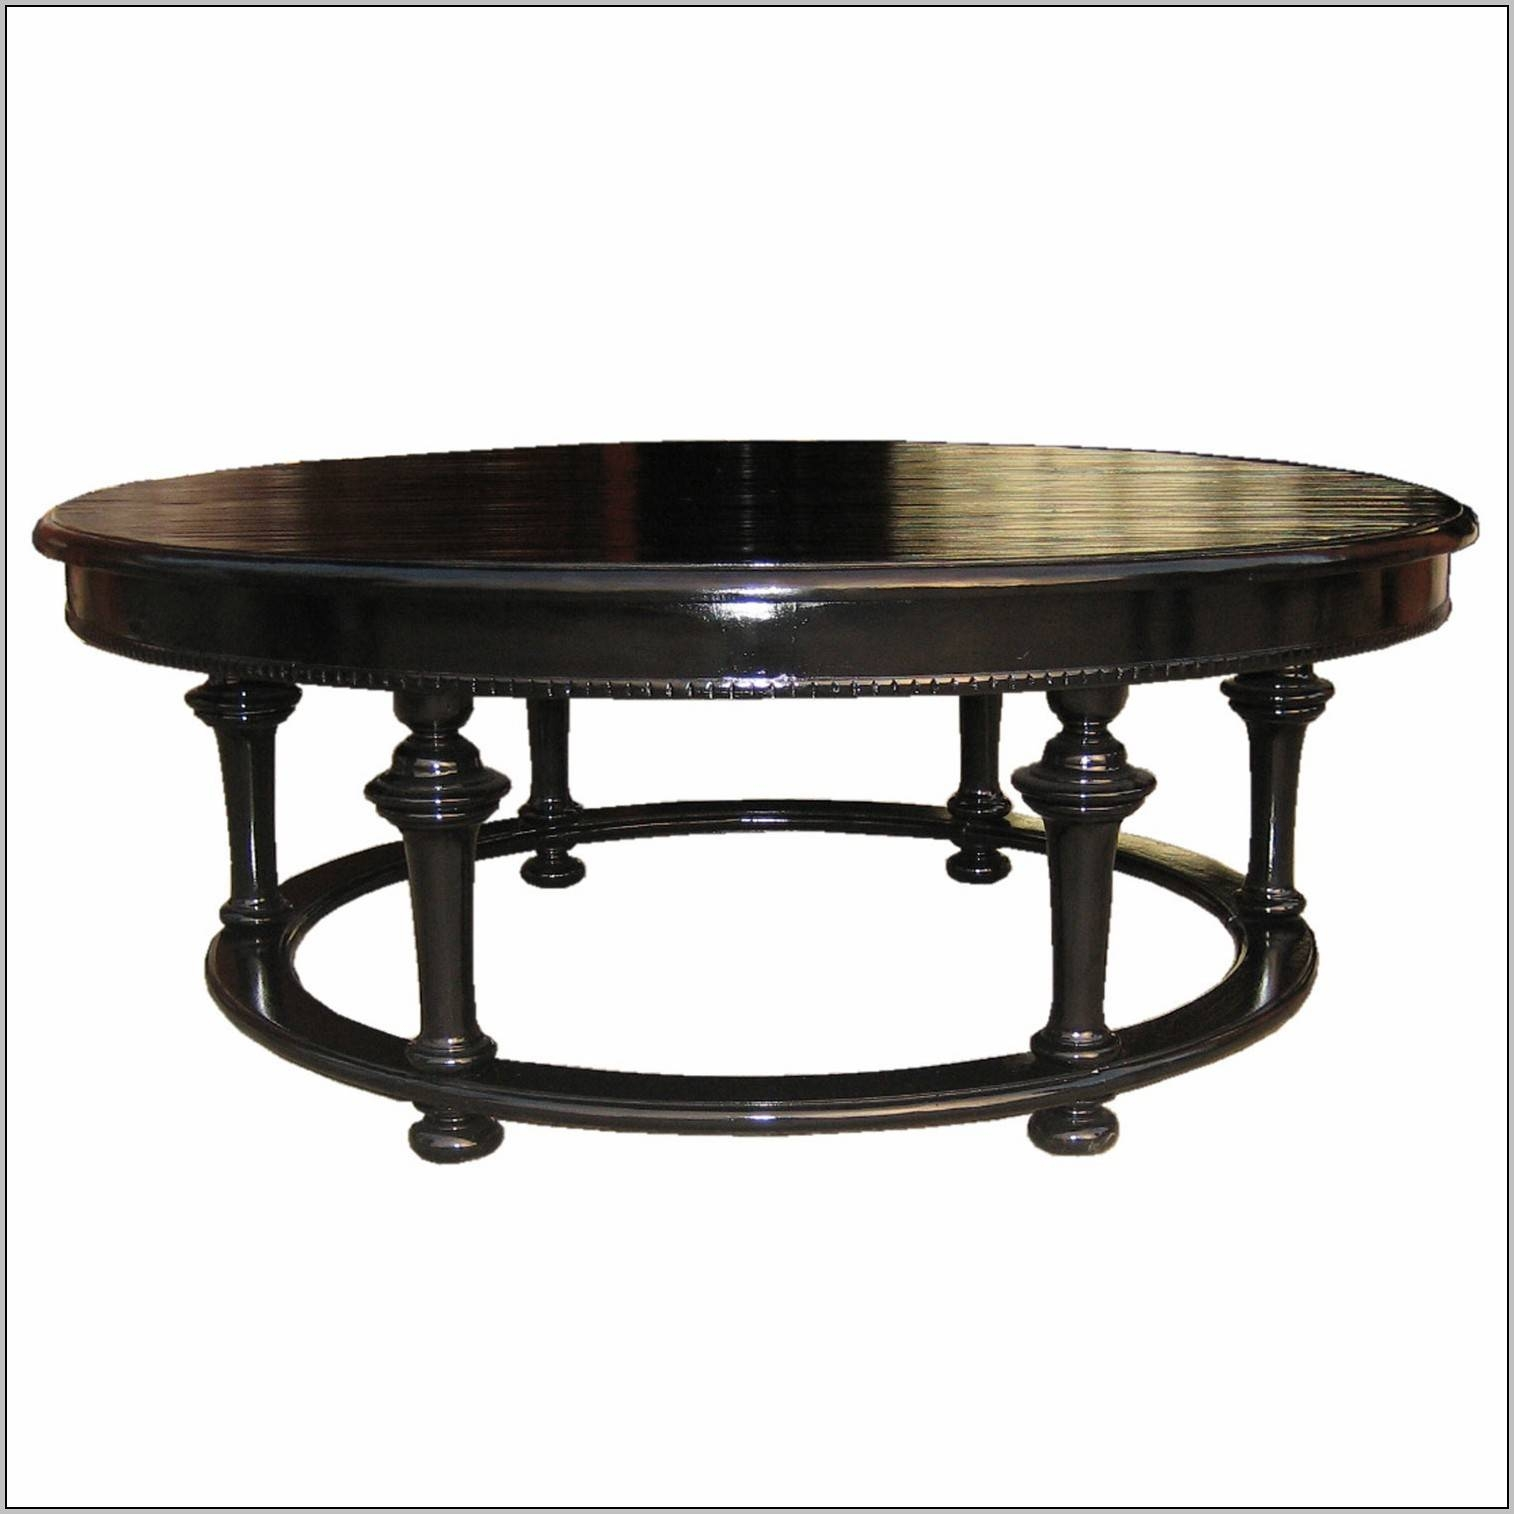 Black Wood Oval Coffee Table - Coffee Table : Home Decorating for Black Oval Coffee Tables (Image 7 of 30)